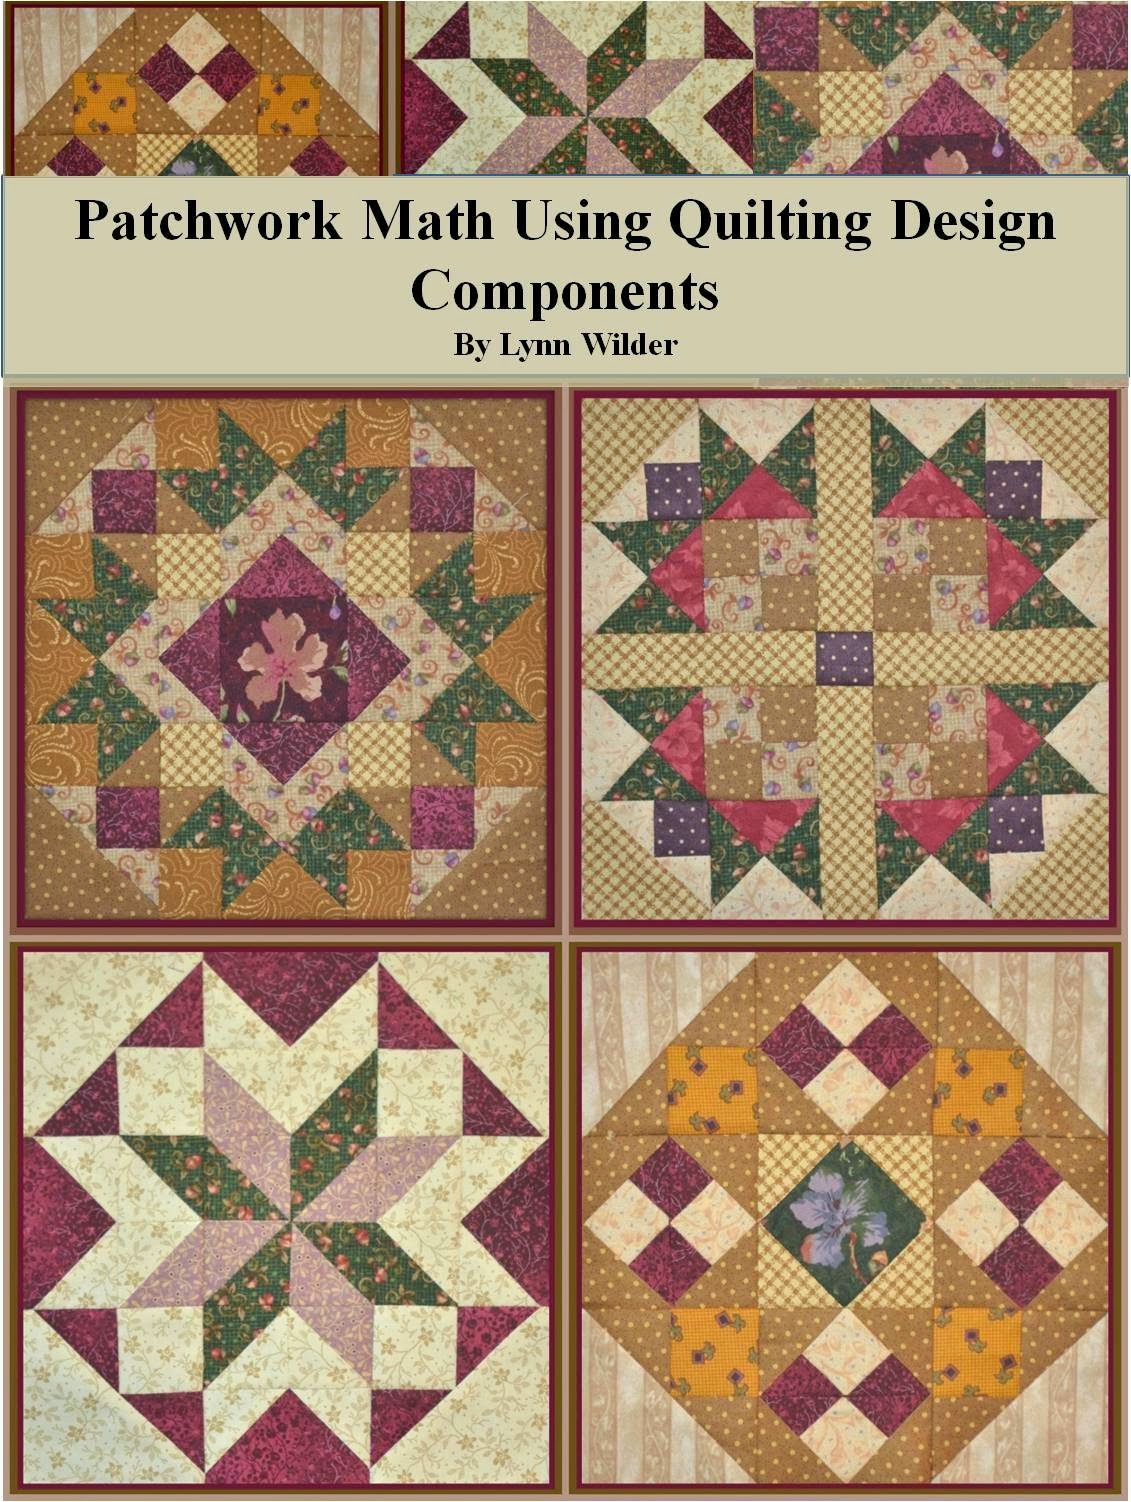 http://www.inbetweenstitches.com/shop/Books/p/Patchwork-Math-Using-Quilting-Design-Components-x2501751.htm